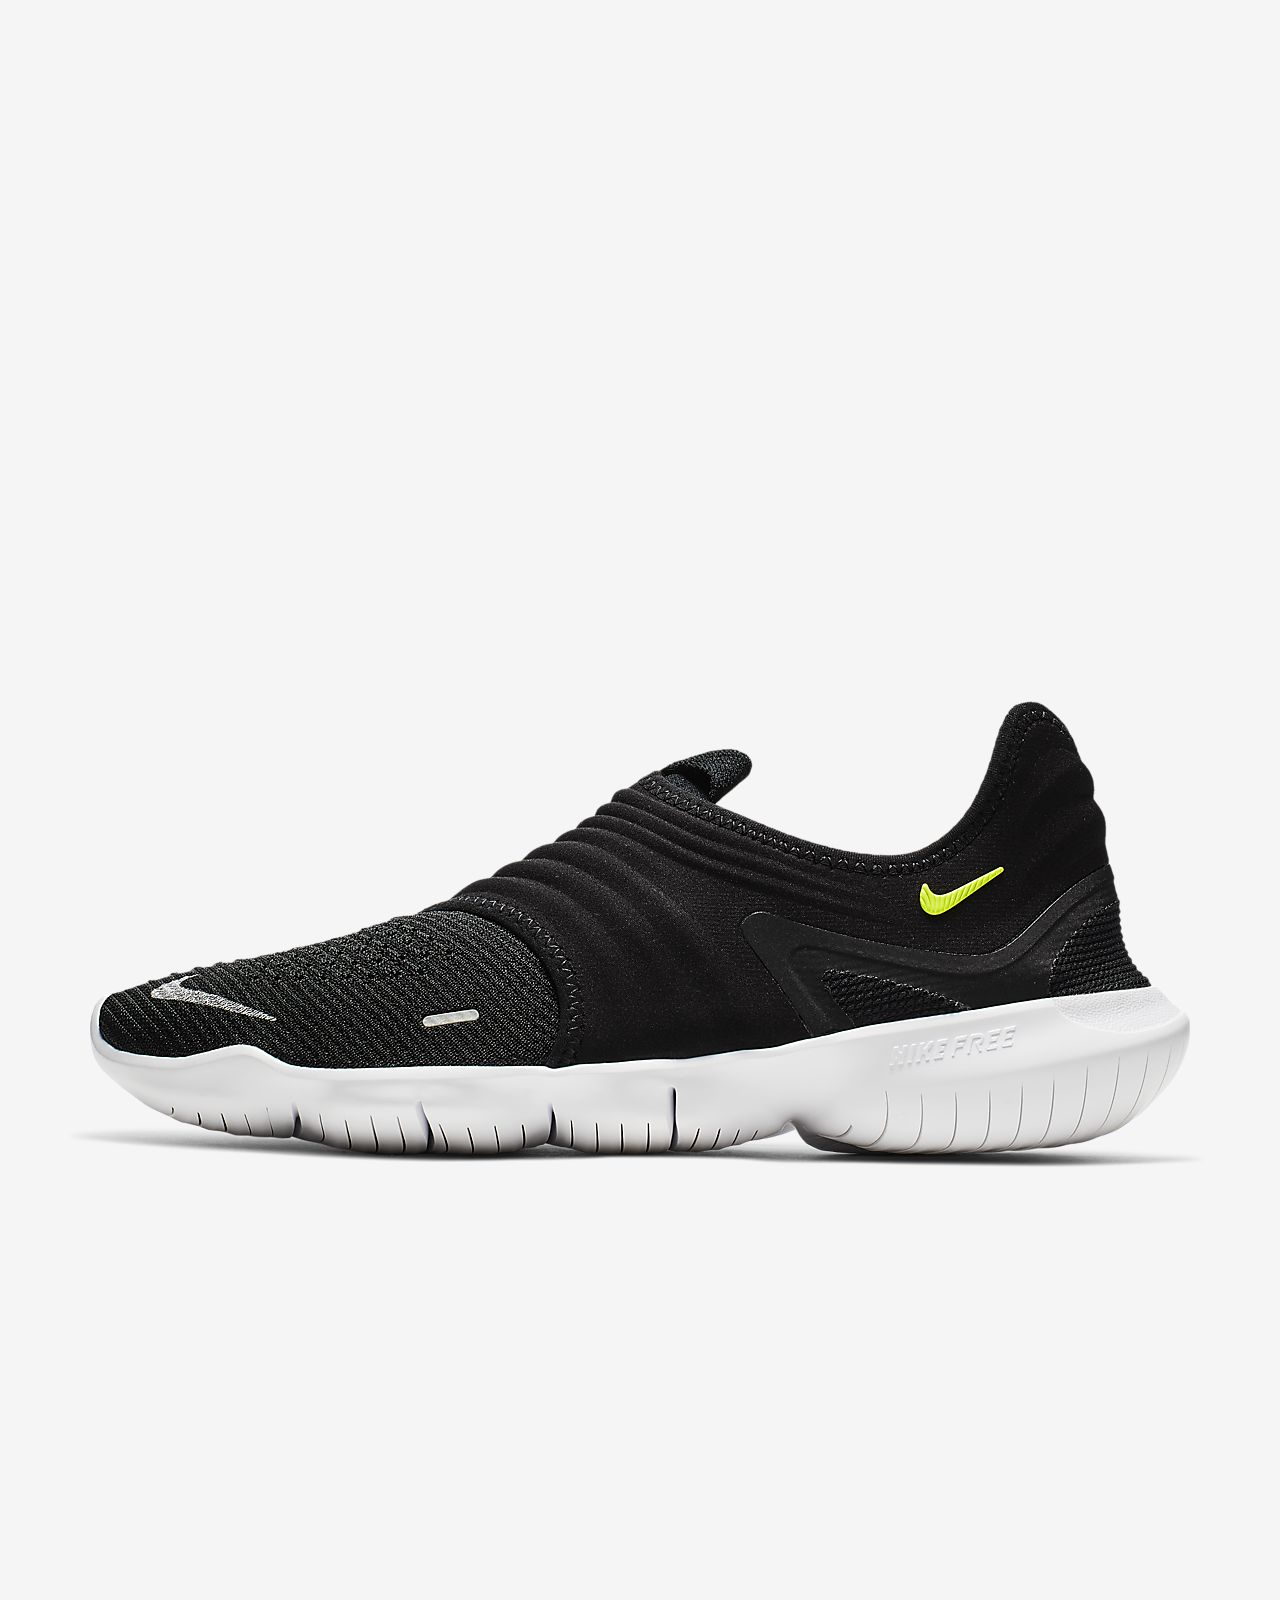 9bad7421fe278 Nike Free RN Flyknit 3.0 Men's Running Shoe. Nike.com GB